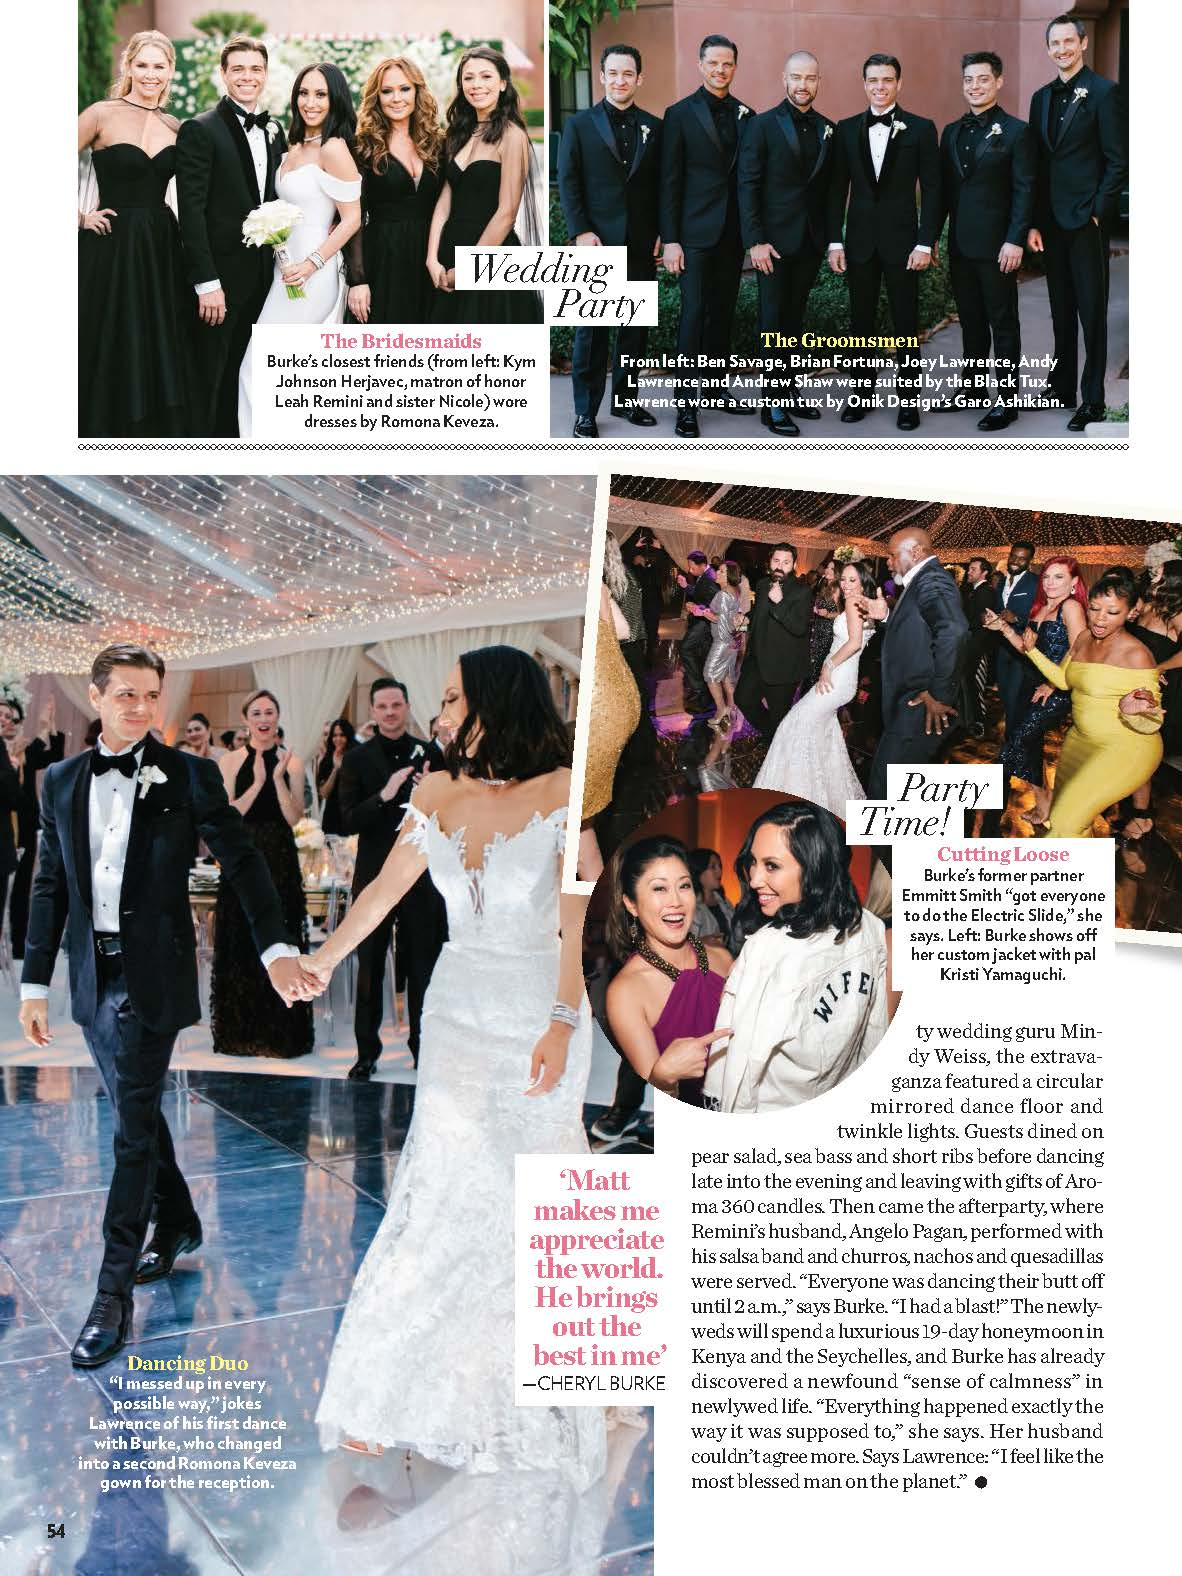 Cheryl and Matt Wedding People magazine_Page_4.jpg